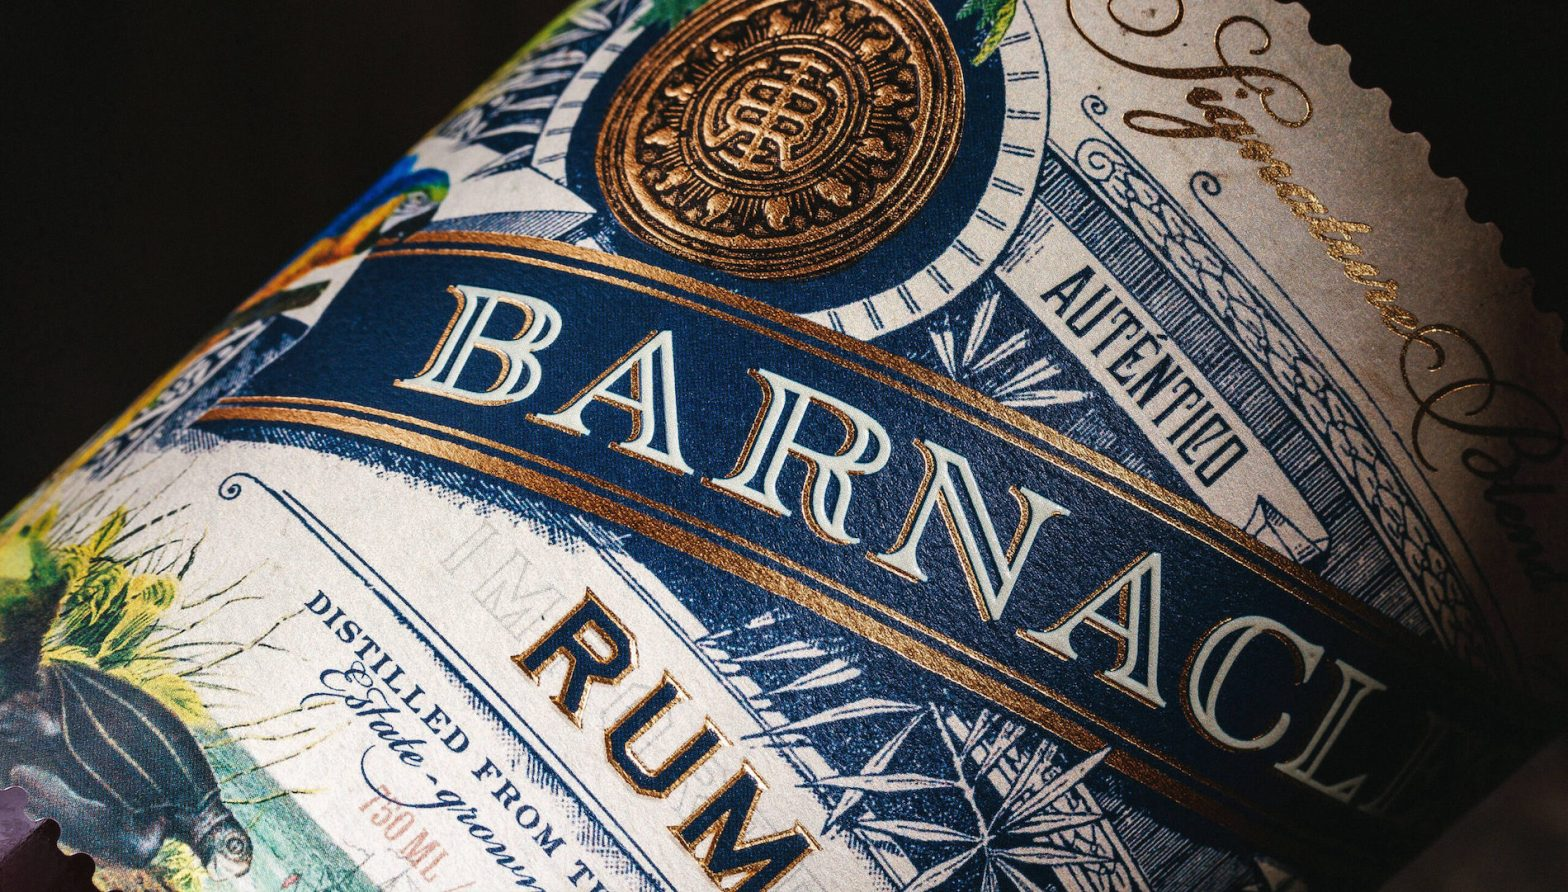 Thumbnail for Barnacles Rum: Add Caribbean Character To Your Bar Cart